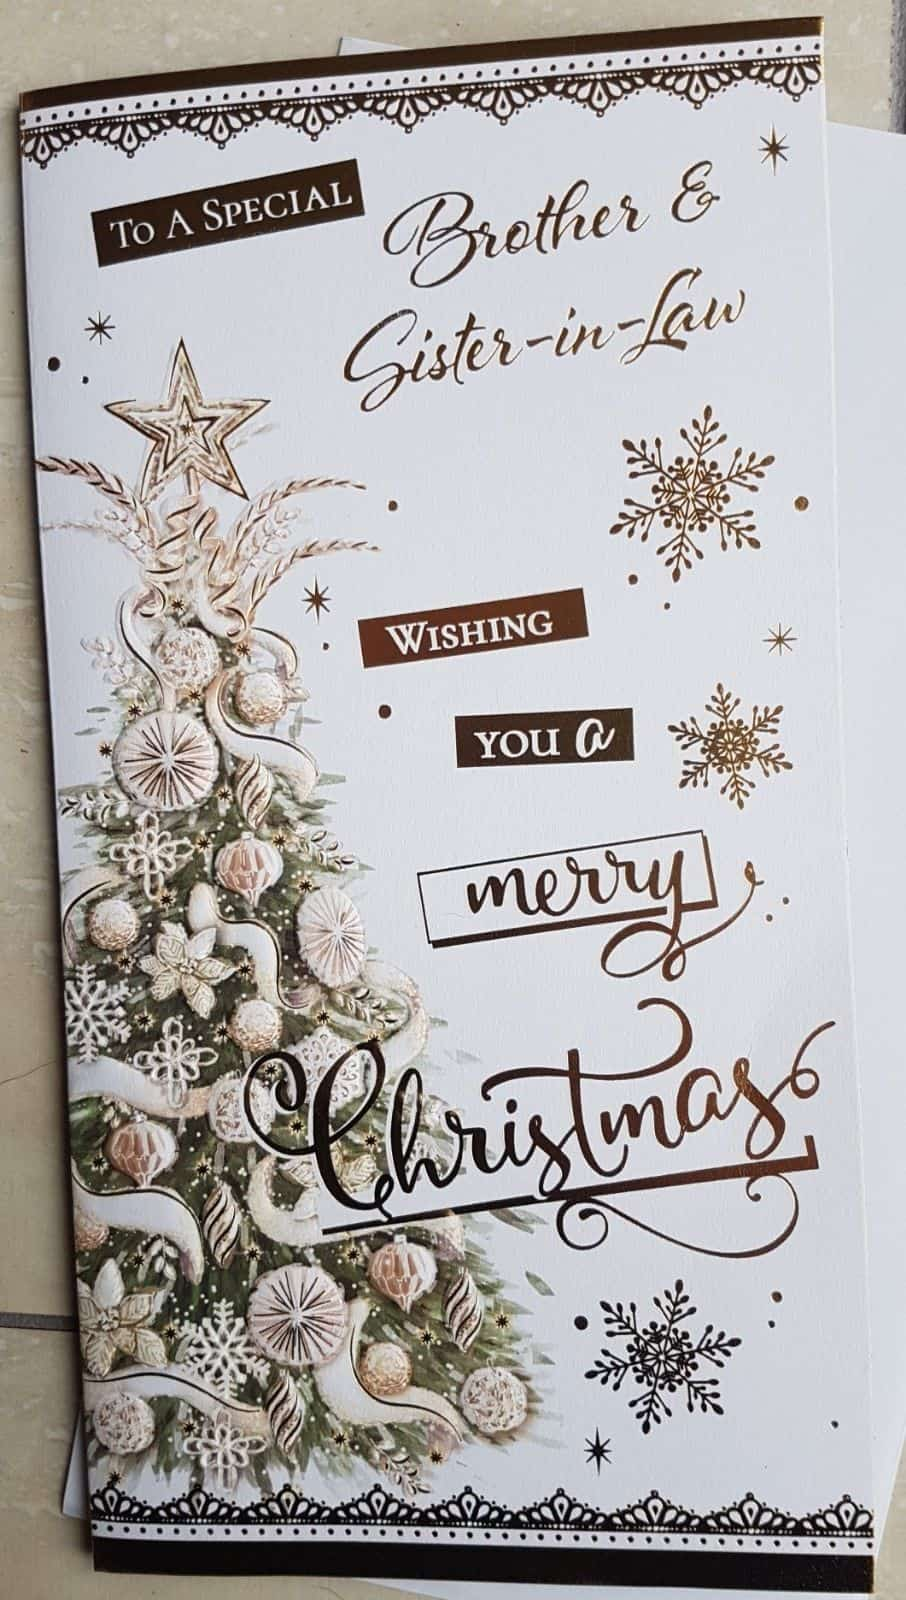 Christmas Gifts For Brother And Sister In Law.Brother Sister In Law Christmas Card With Festive Gold Christmas Tree